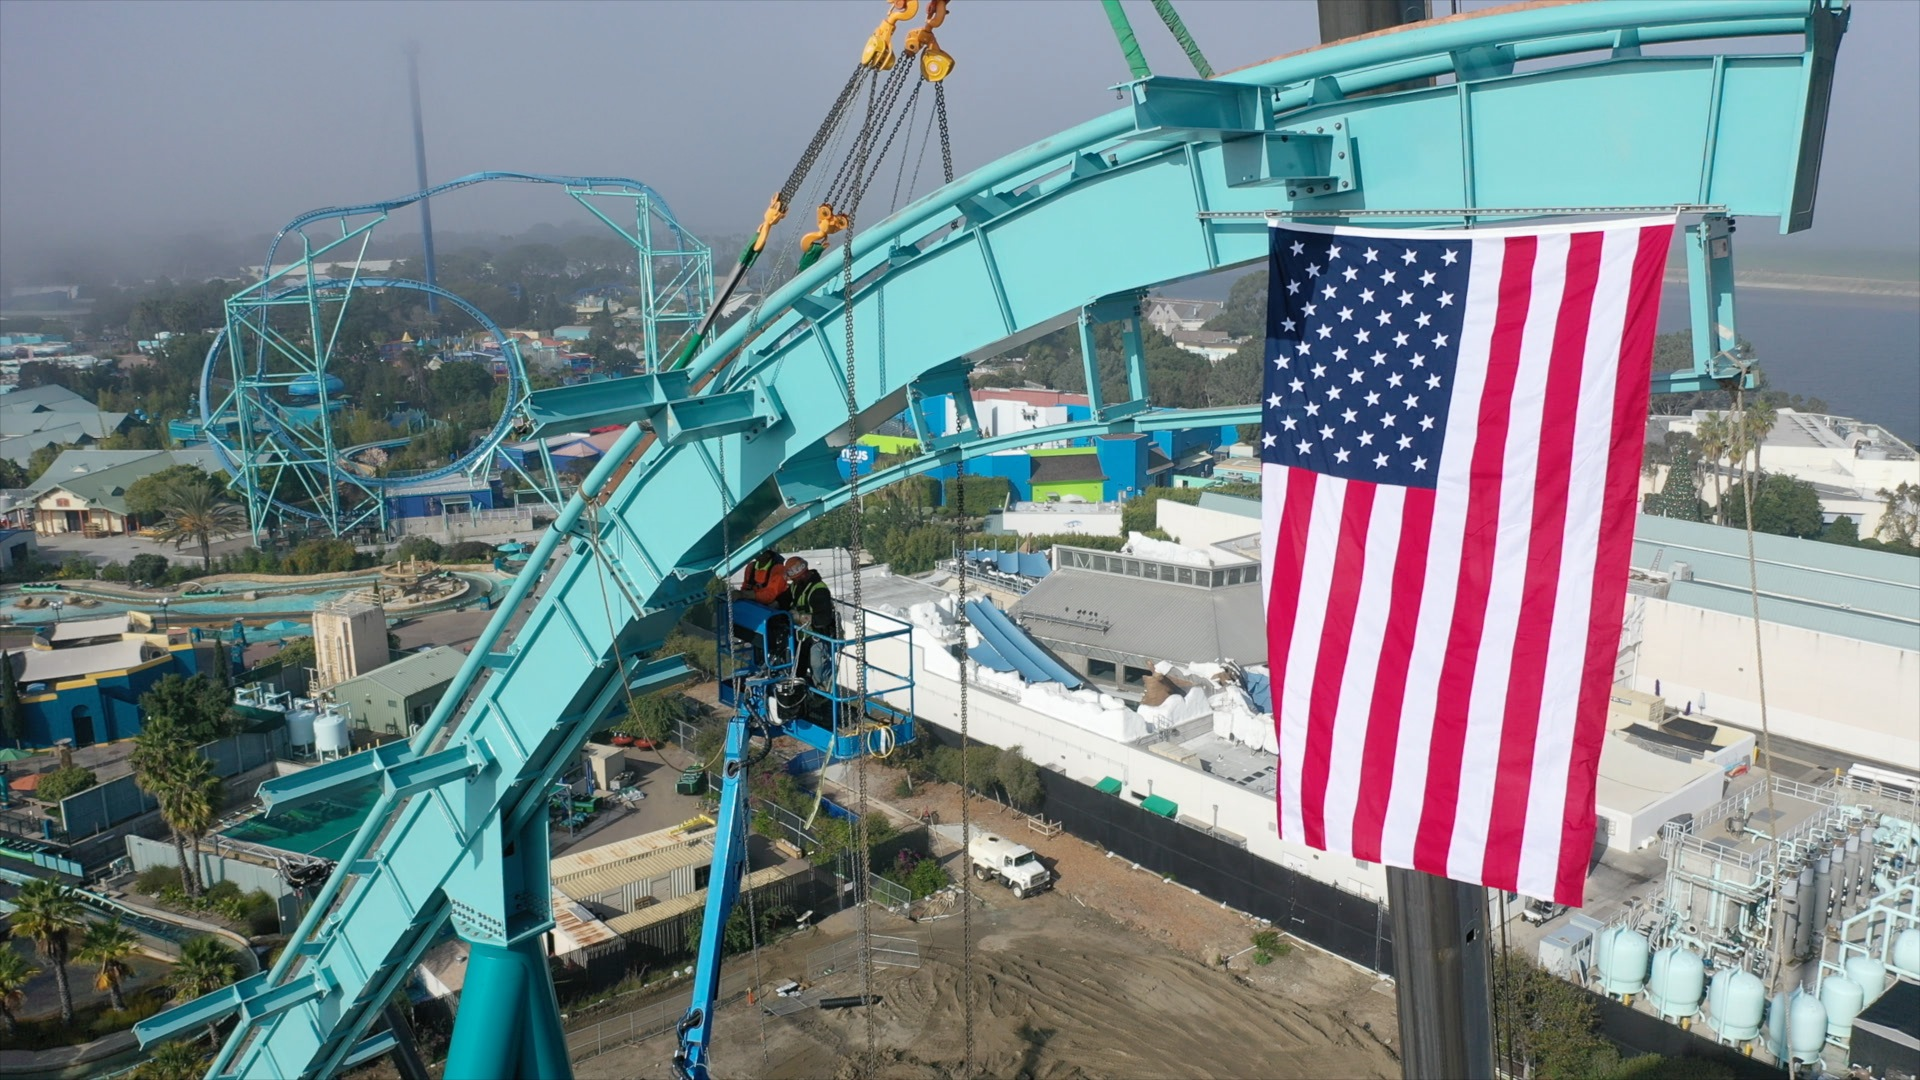 Seaworld San Diego Lays Highest Track Section For New Dive Roller Coaster Times Of San Diego